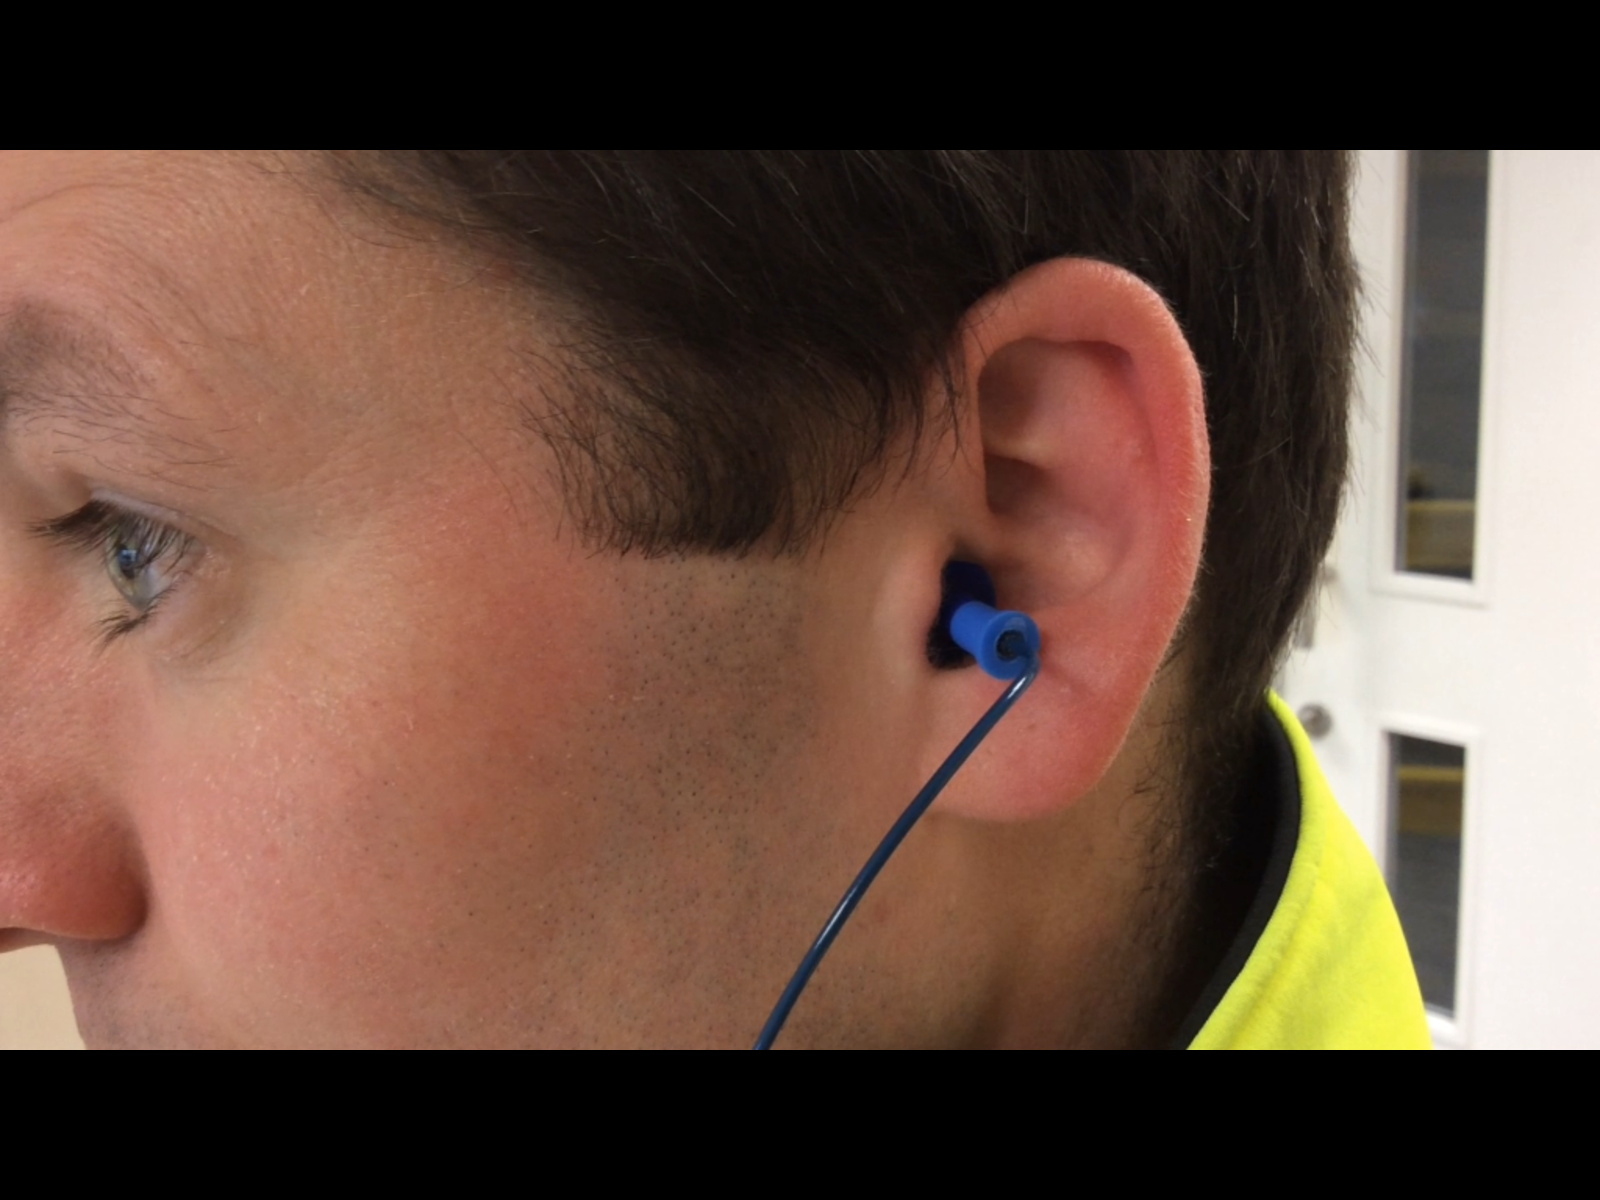 Man with earplug properly fitted